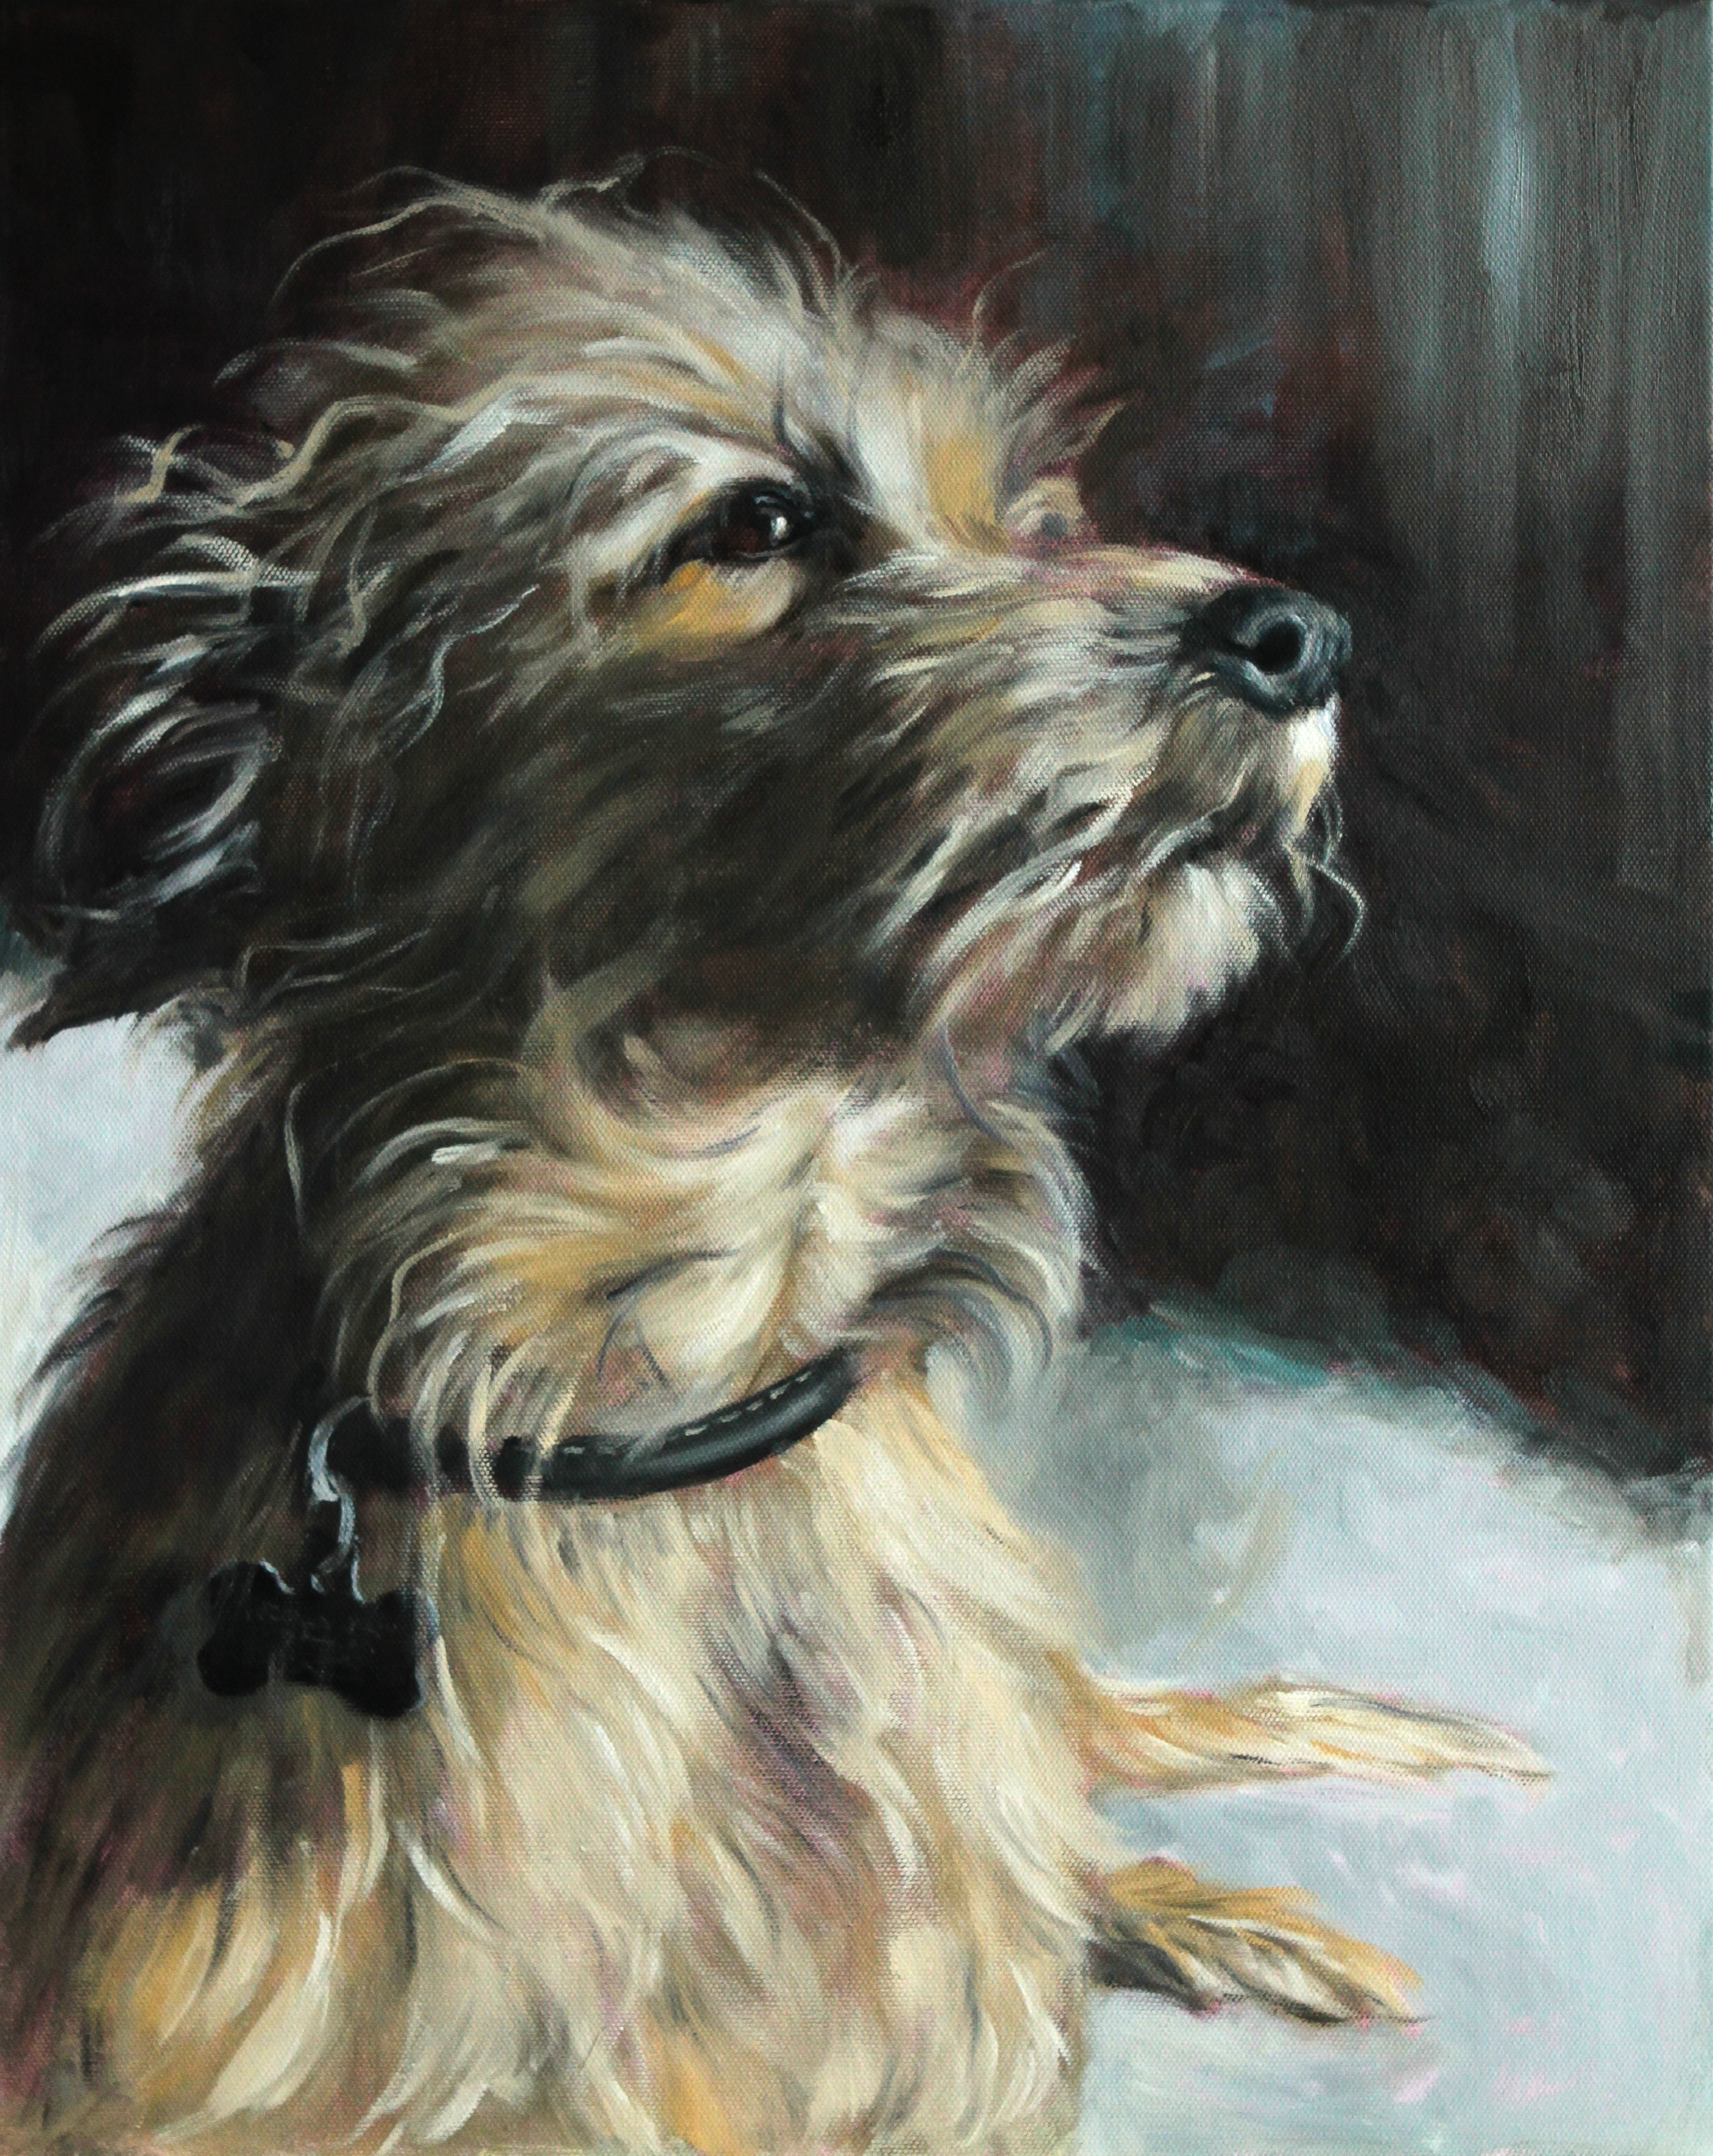 """Charlie"", previous commission, oil on canvas, 16 in x 20 in."